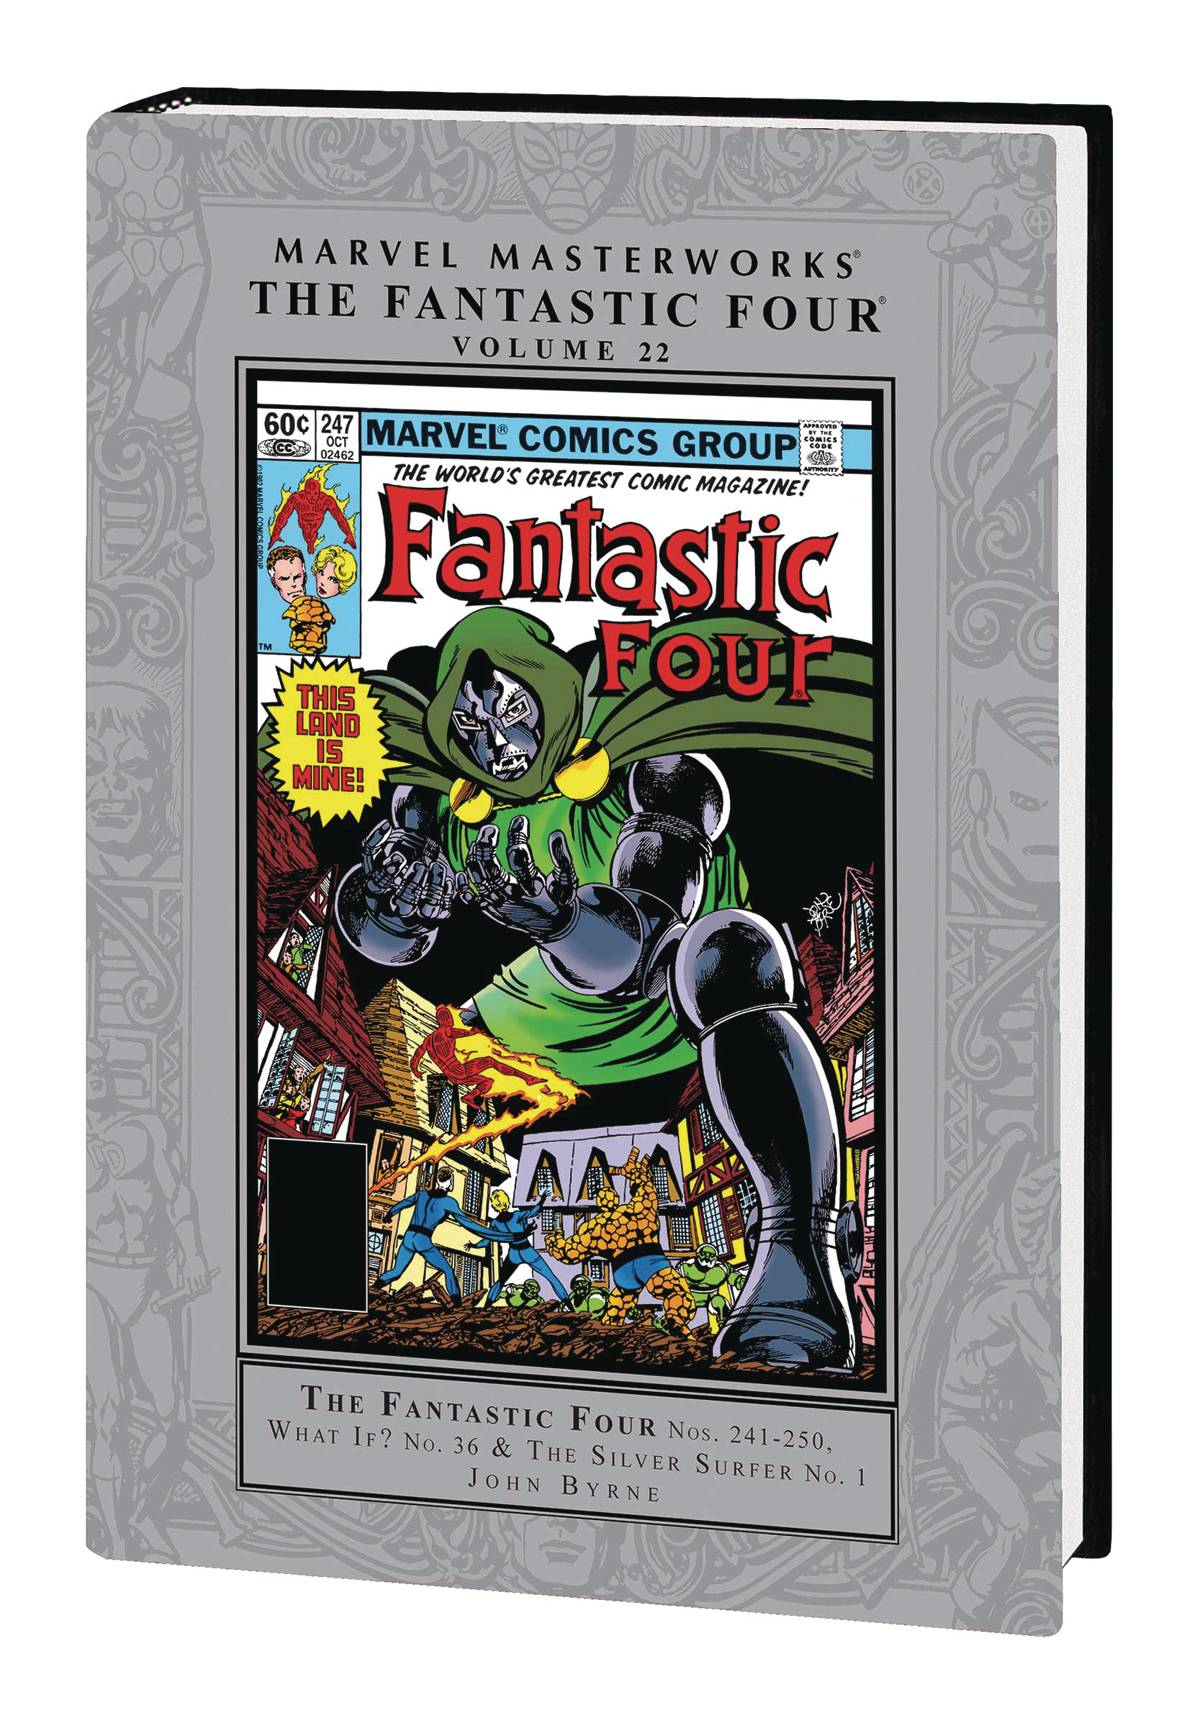 MMW FANTASTIC FOUR HC VOL 22